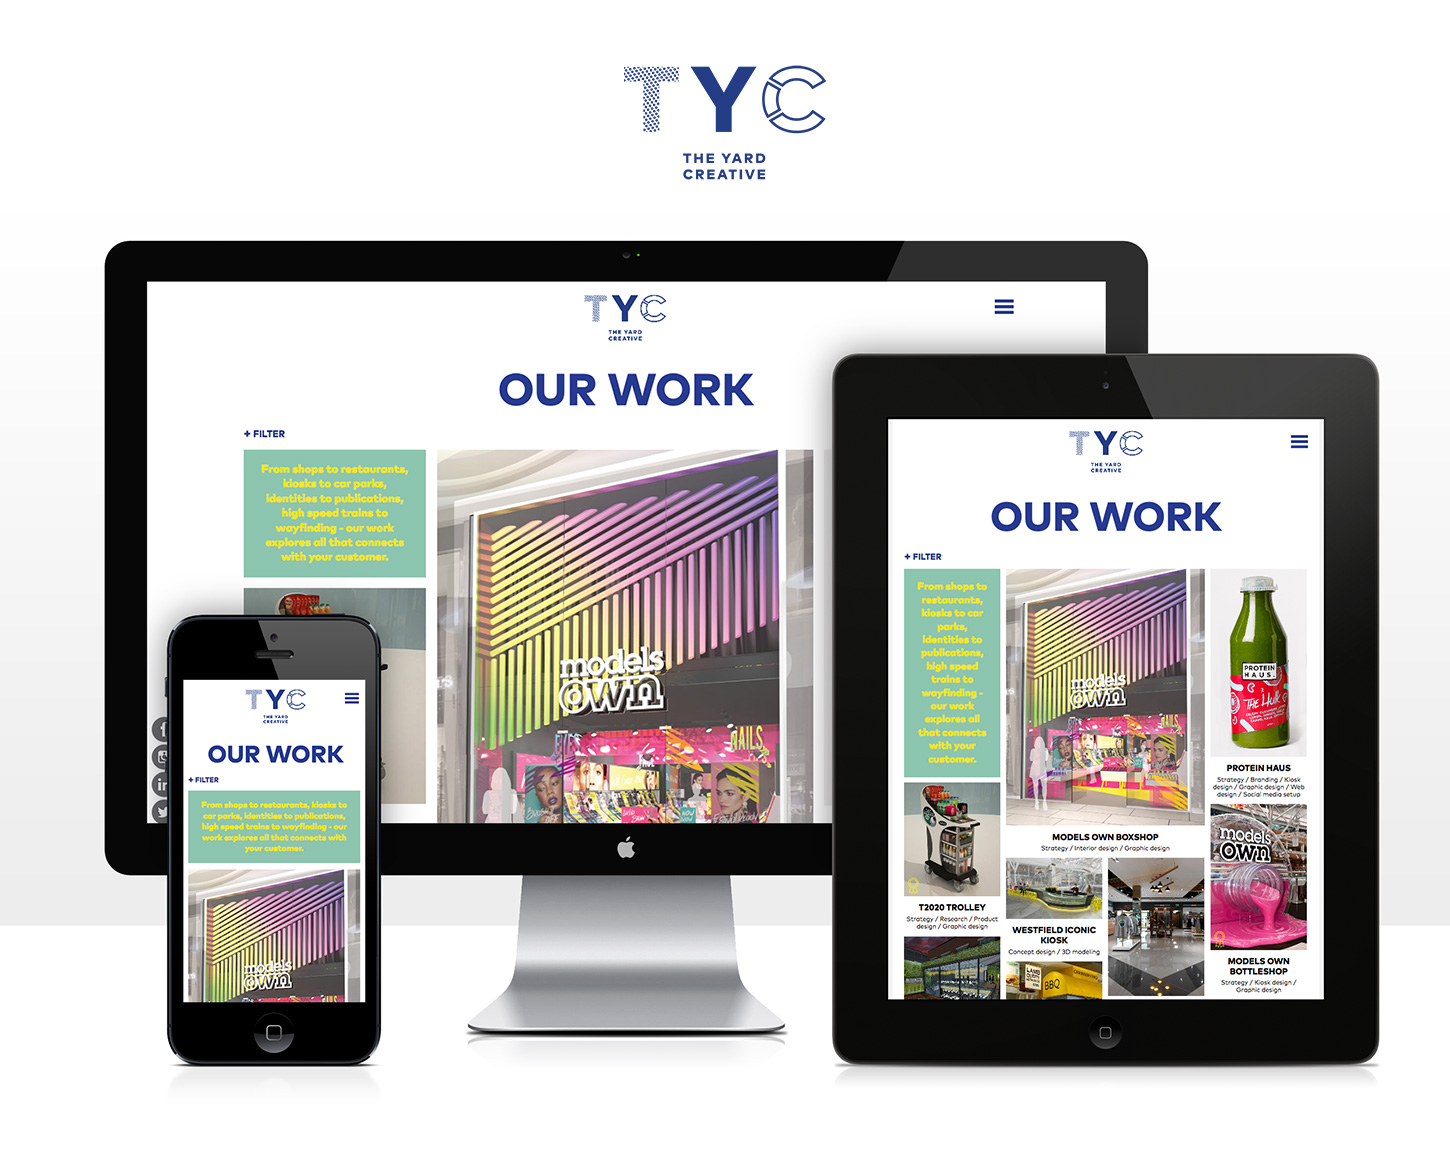 The Yard Creative website